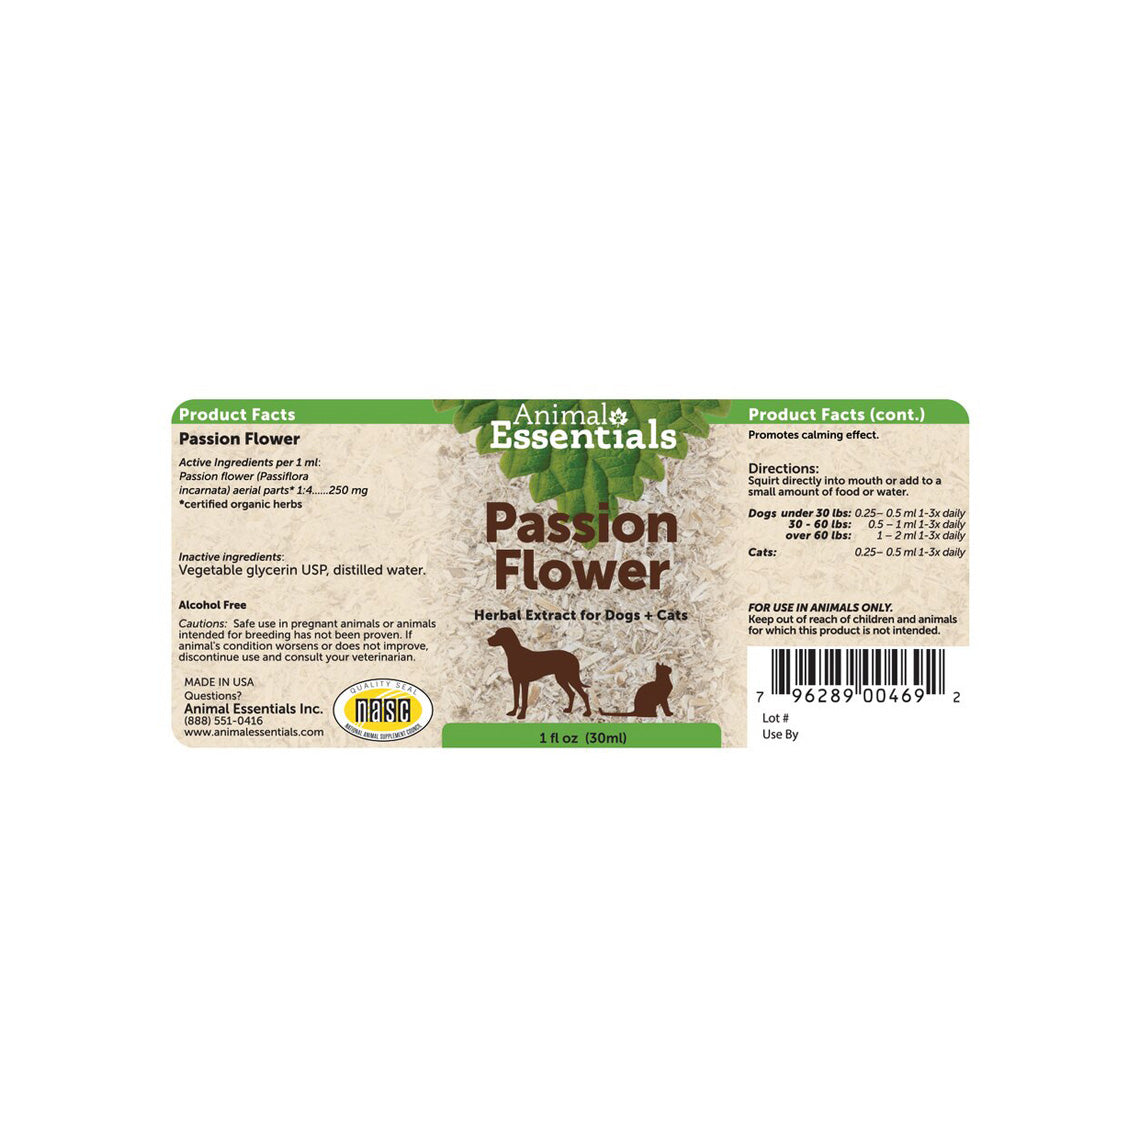 Animal Essentials Passion Flower For Dogs Cats Only Natural Pet